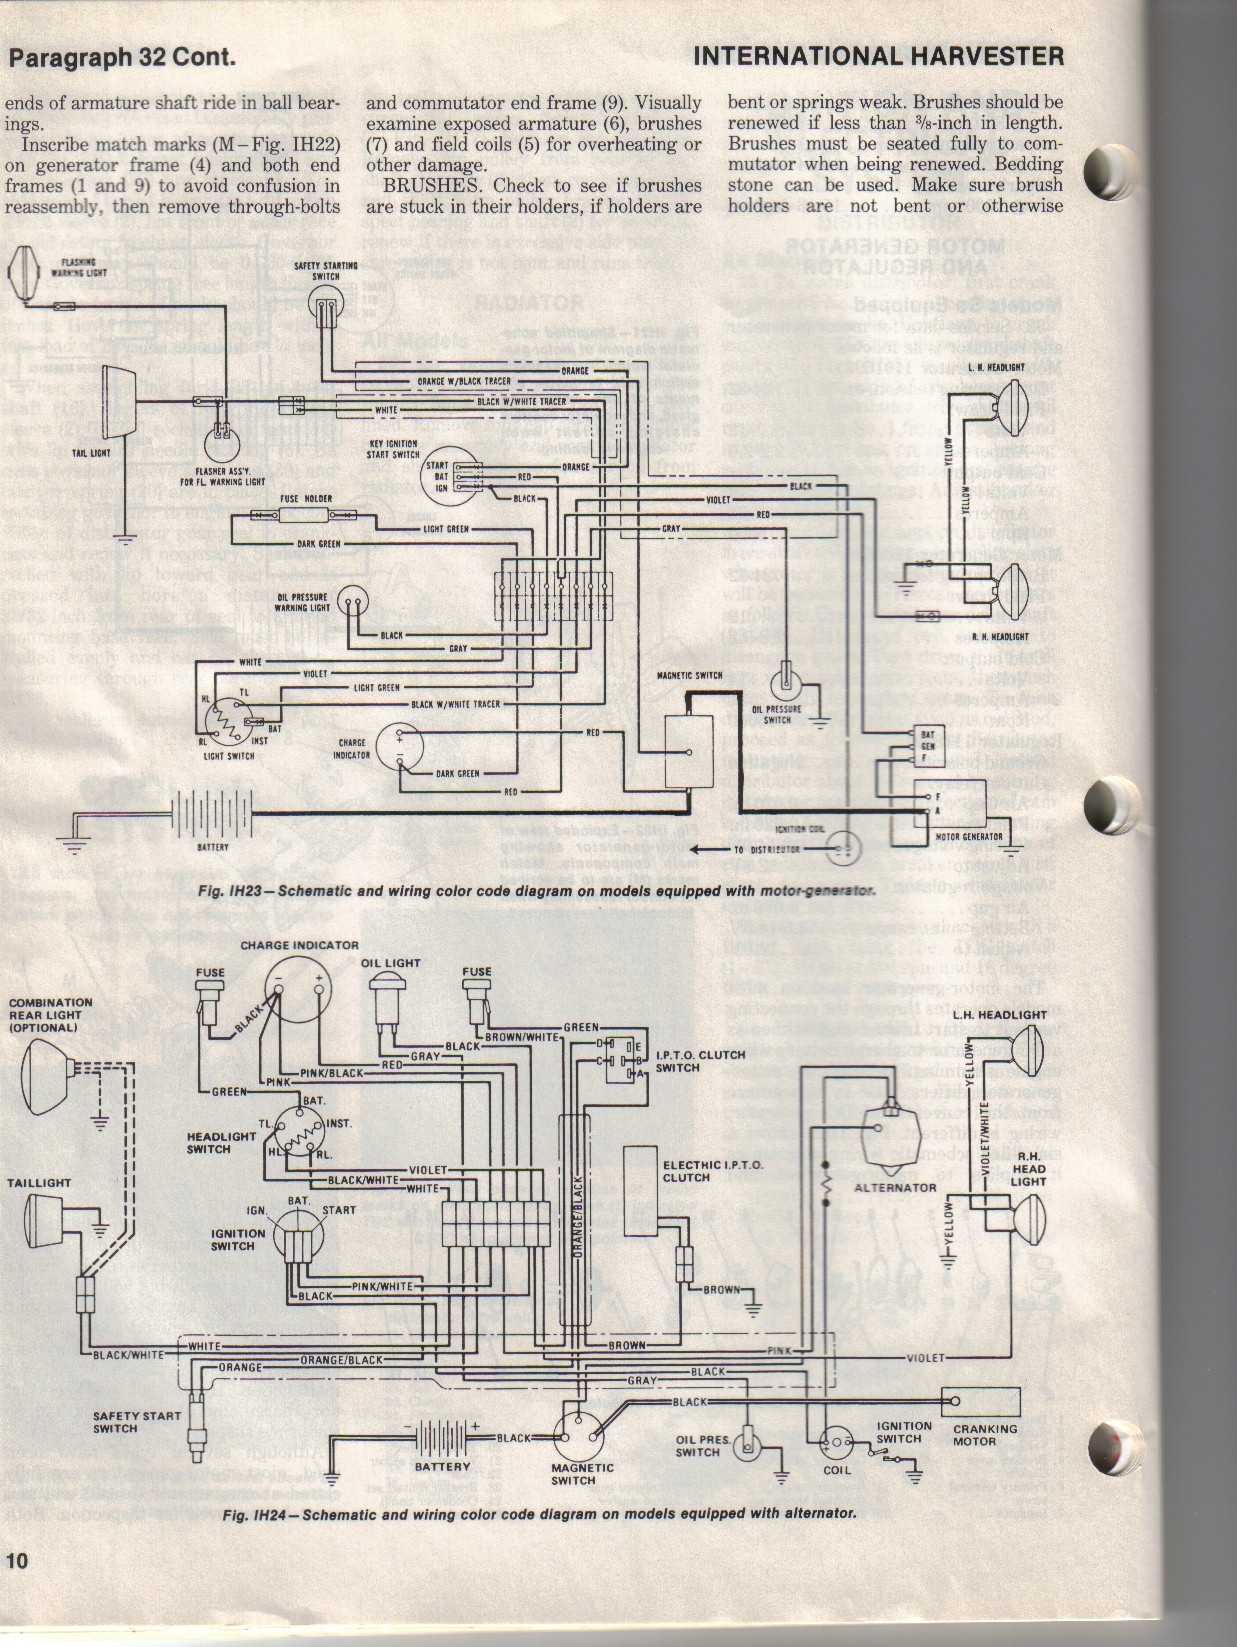 Amazing Alice Richards Southwire Photos - Wiring Diagram Ideas ...